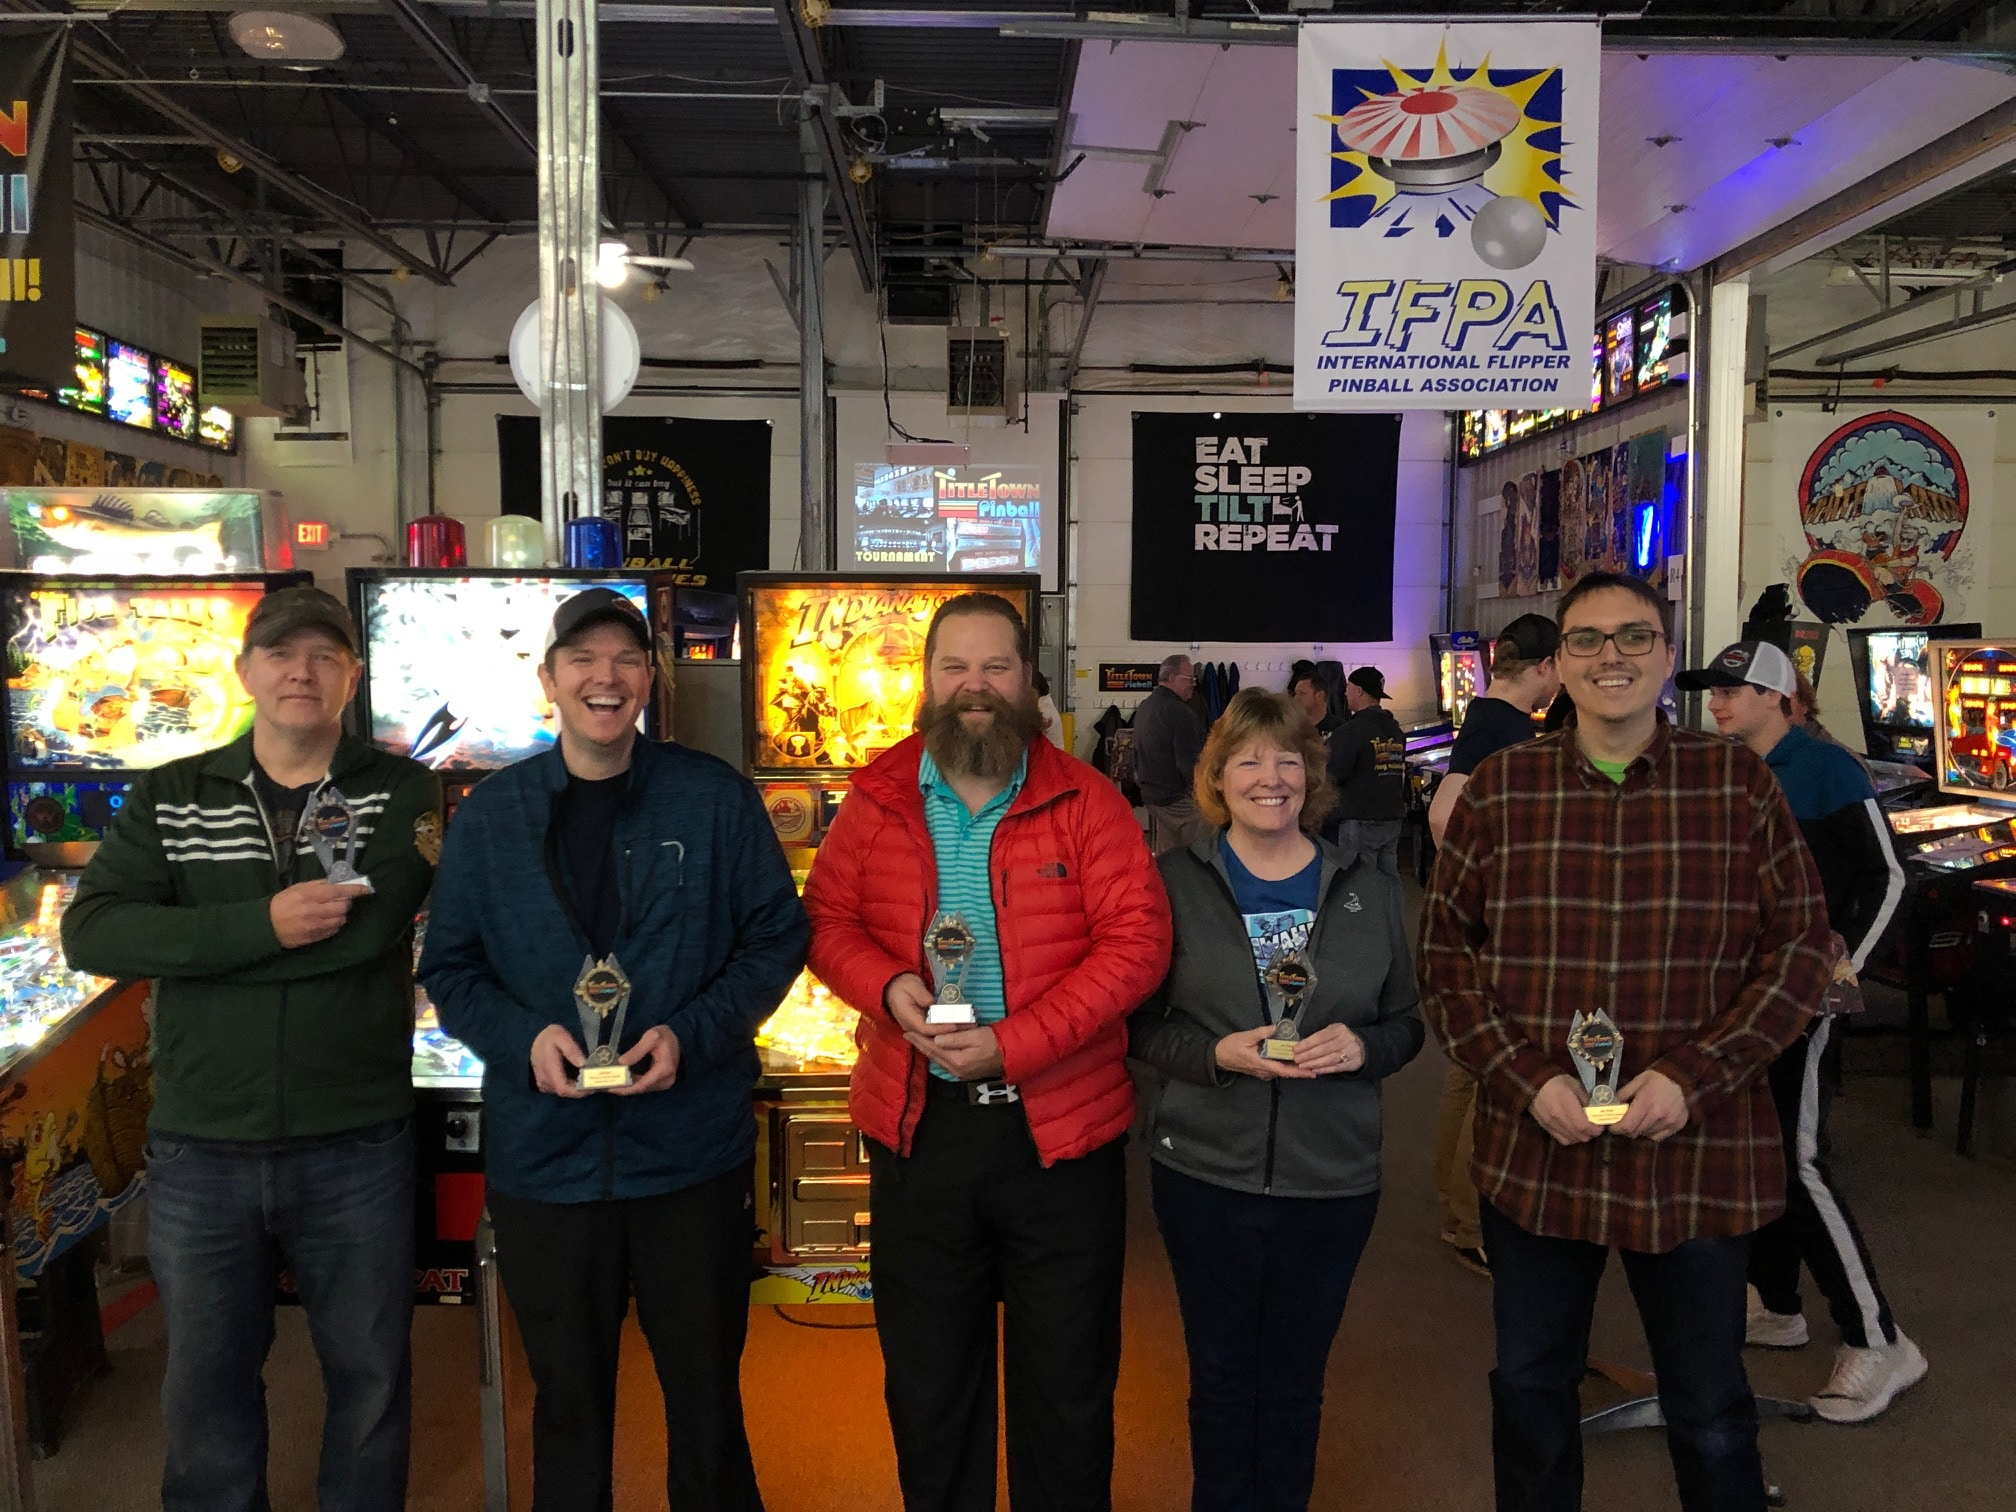 December 2019 Pinball League Top 5 Green Bay, WI